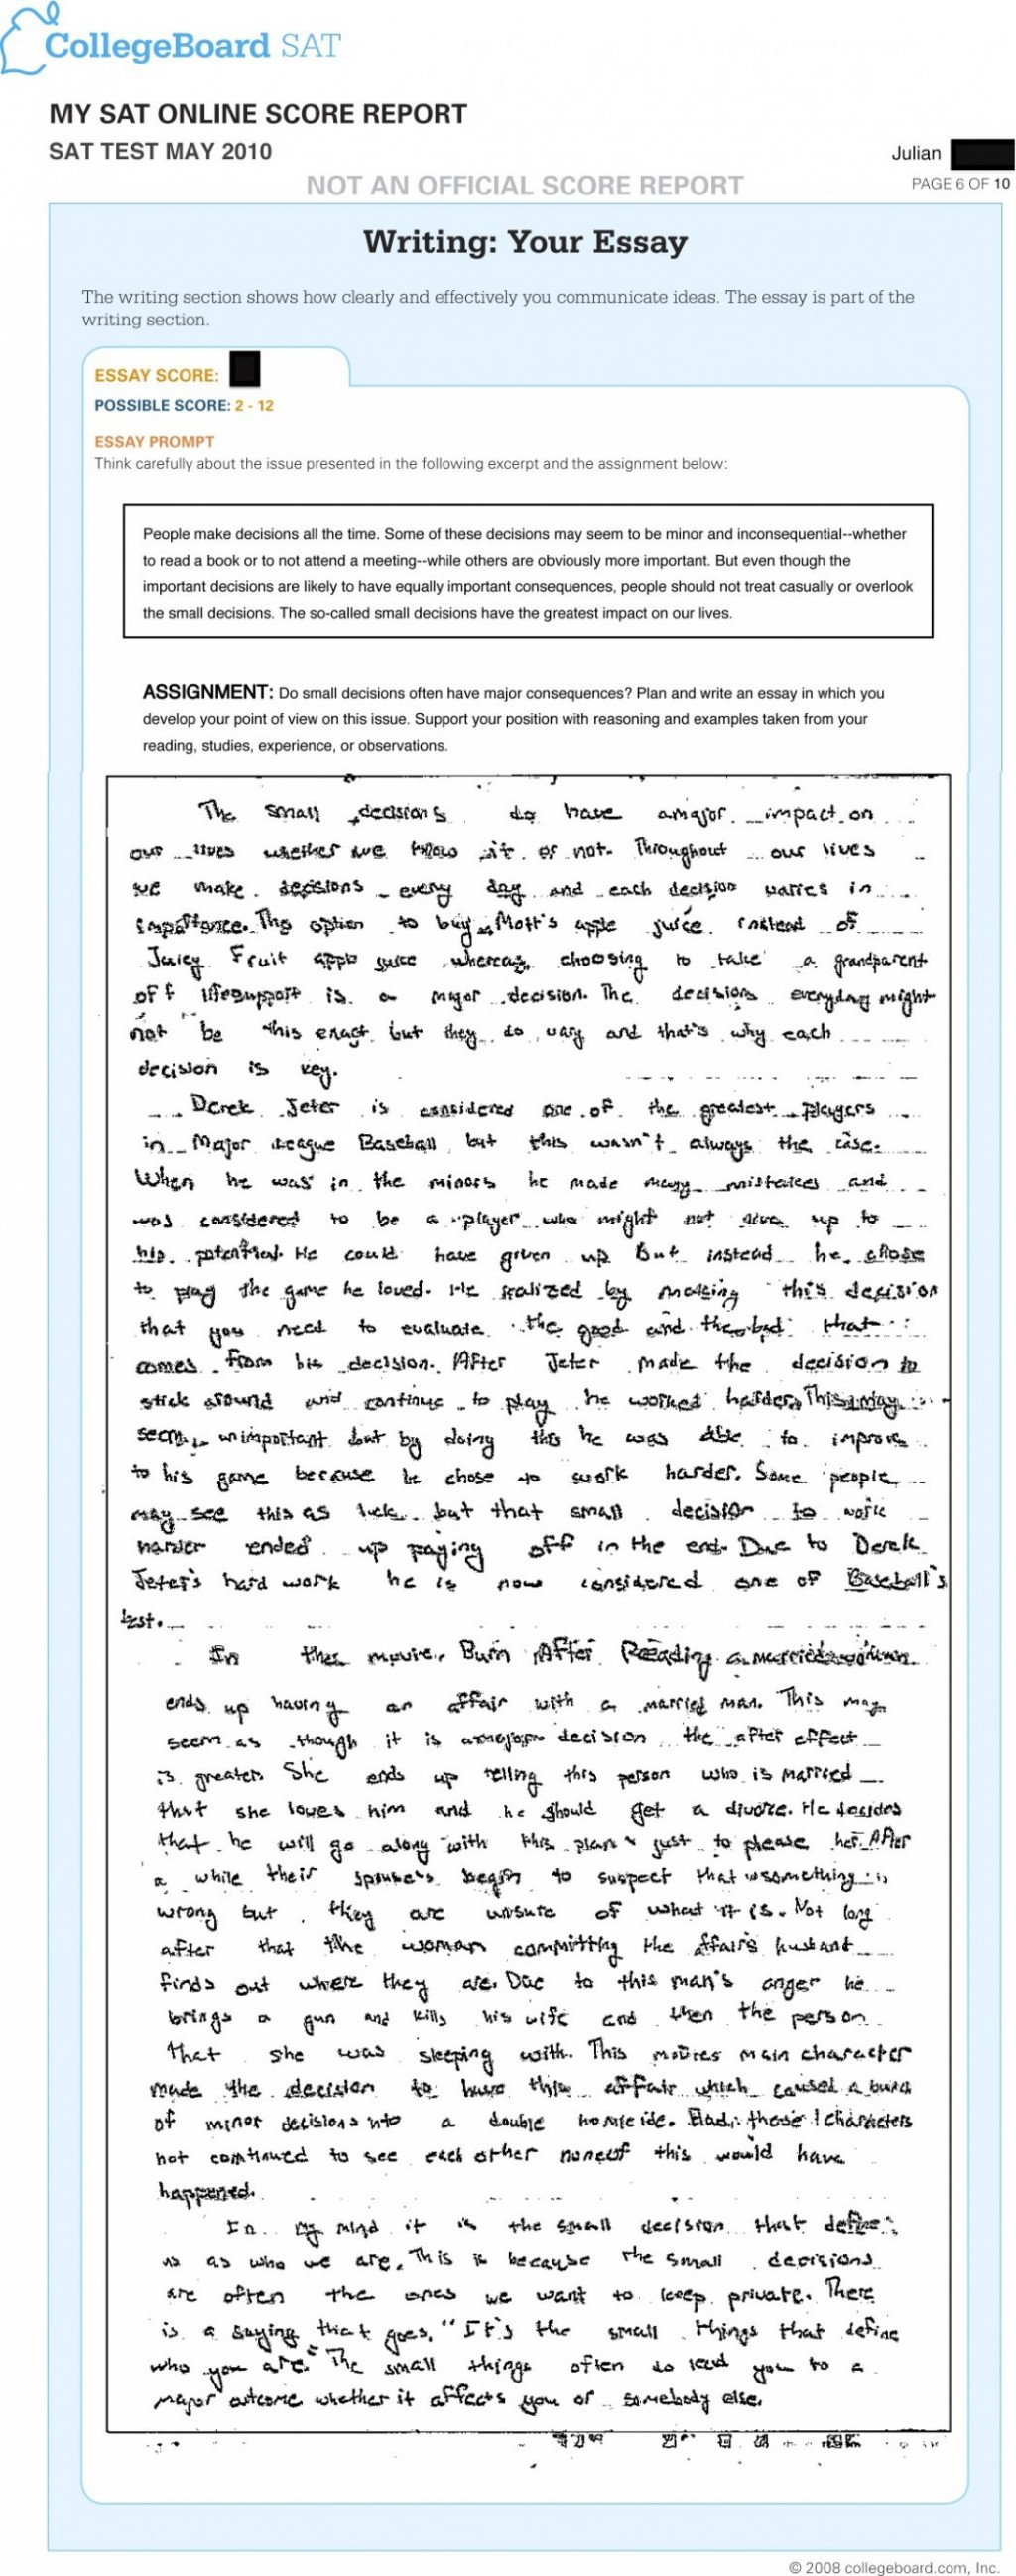 007 Essay Example Does The Sat Affect Your Score Scoring What Is Out Of Writing How To Write Good Introduction Jr May Really Intro Perfect Conclusion Stupendous 2016 Large